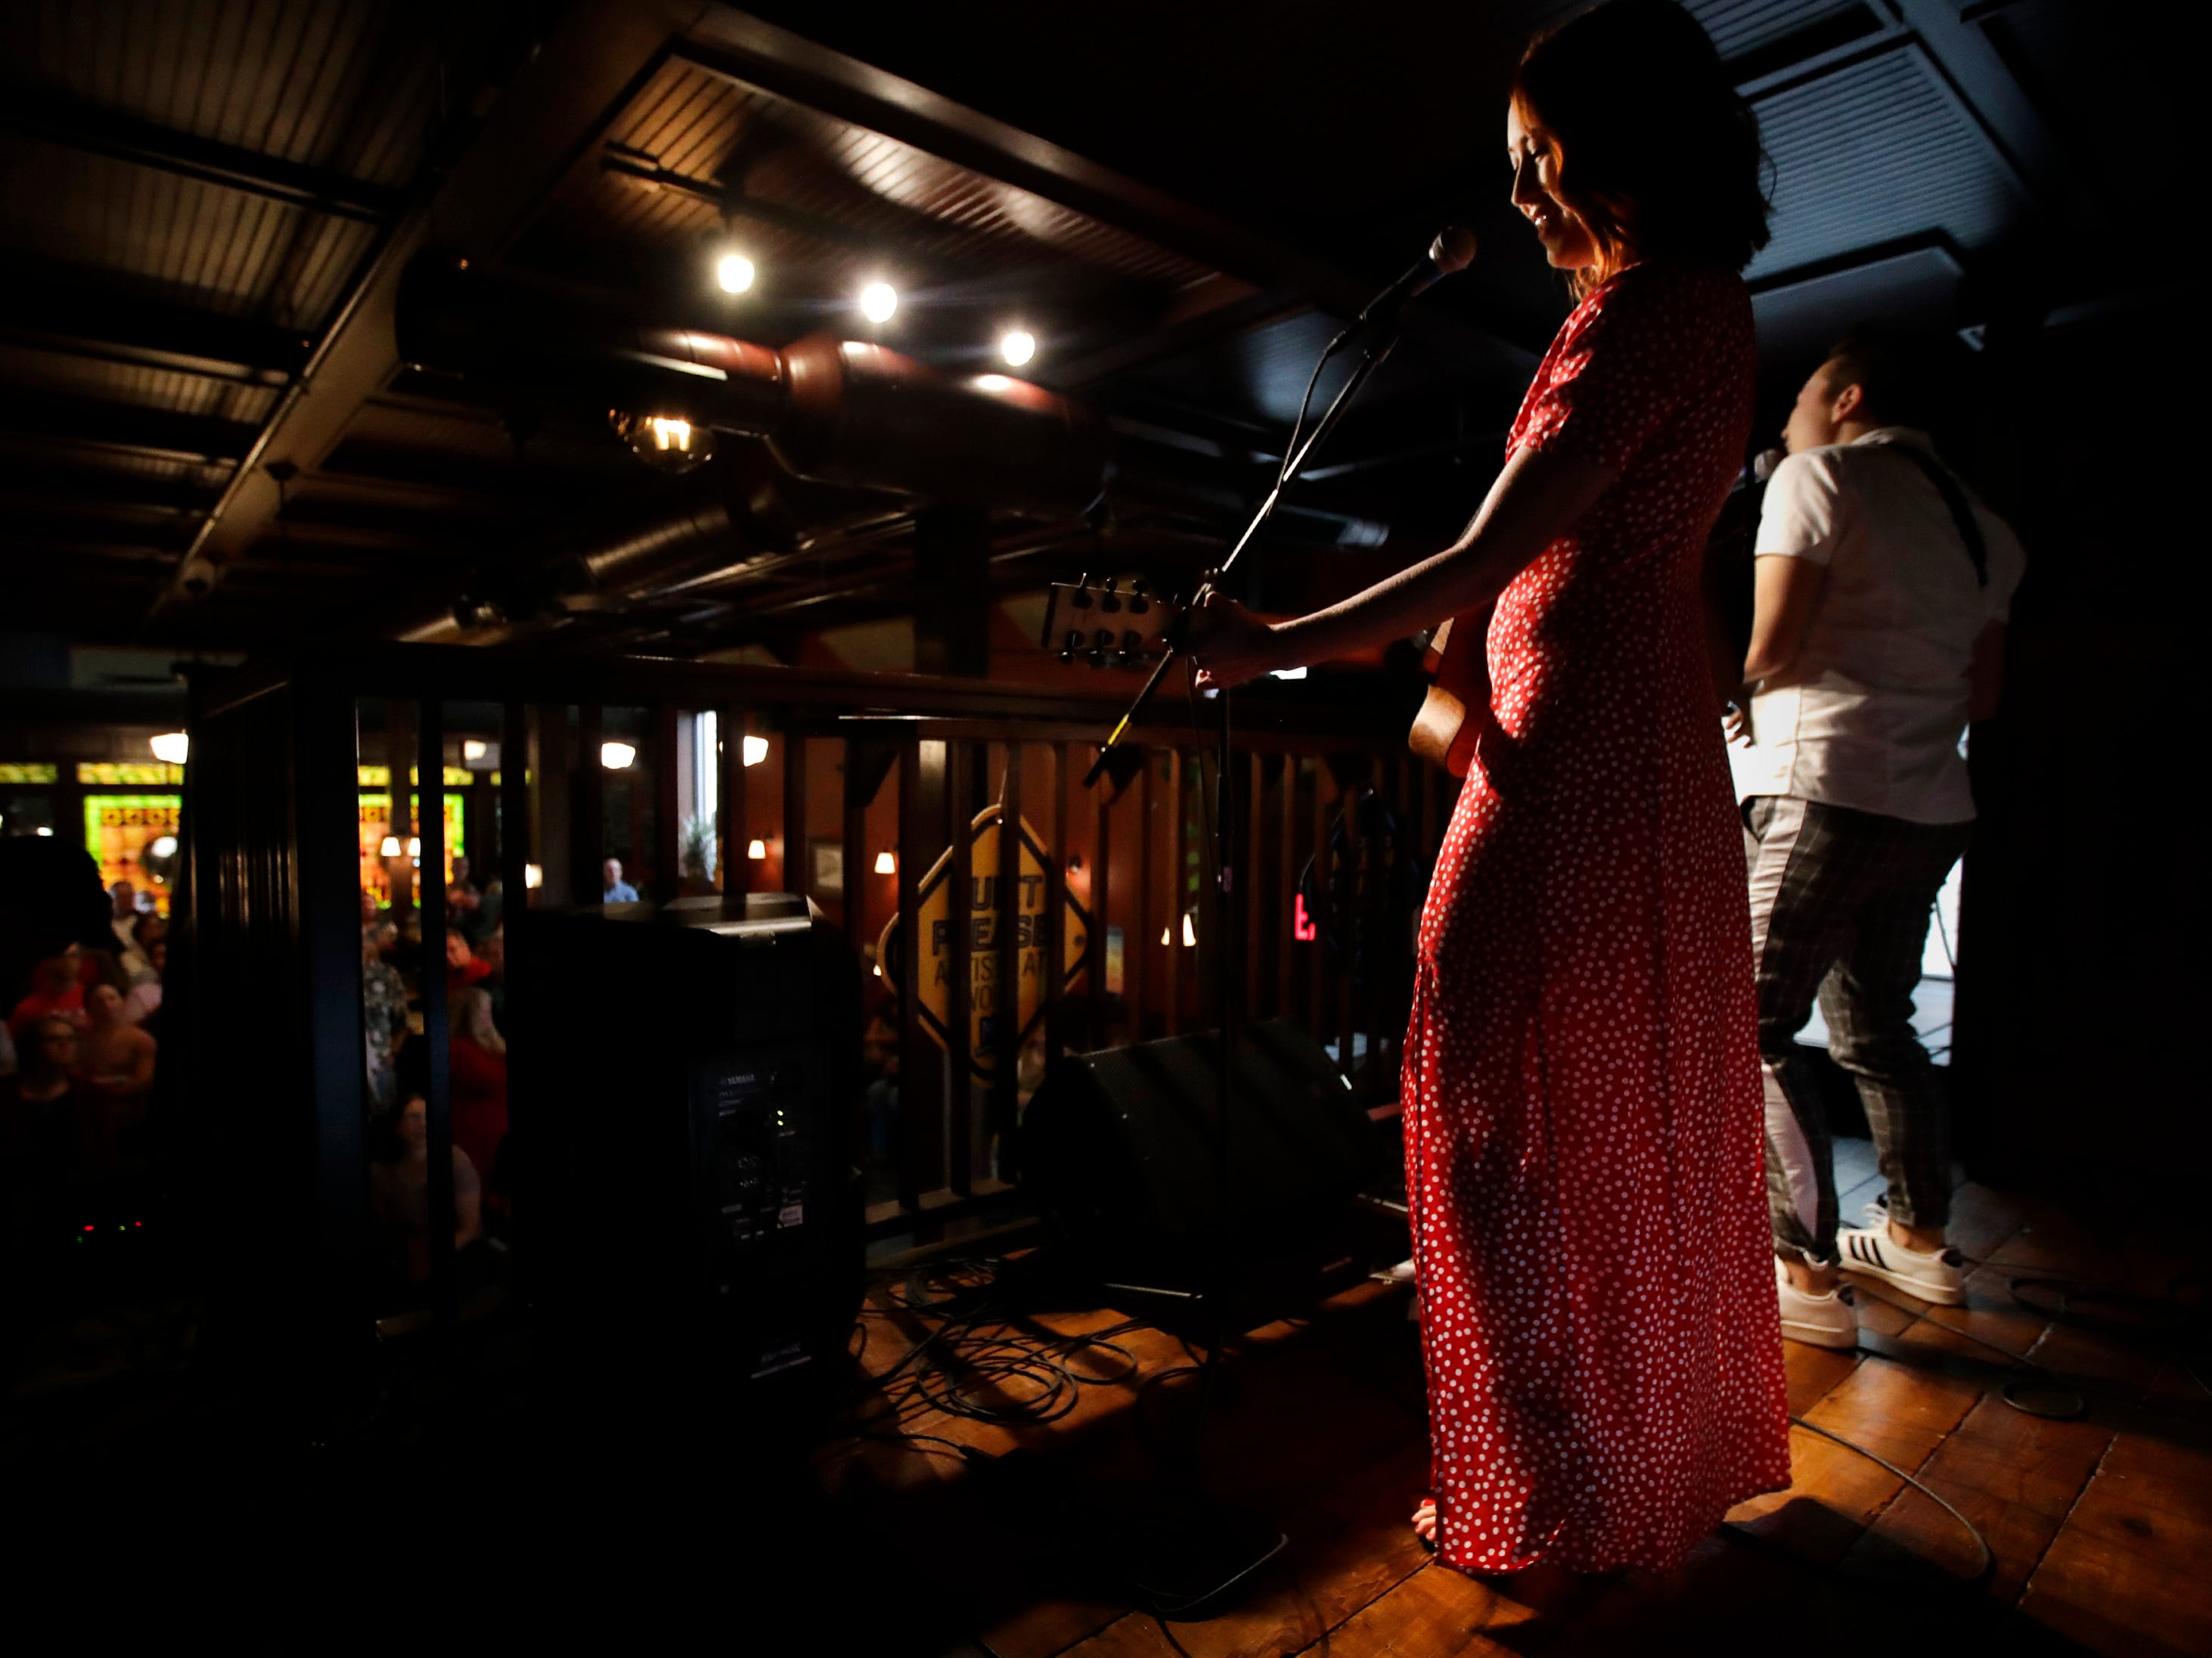 Chasing Lovely performs at McFleshman's Brewing Co. during the first day of Mile of Music Thursday, Aug. 2, 2018, in Appleton, Wis.